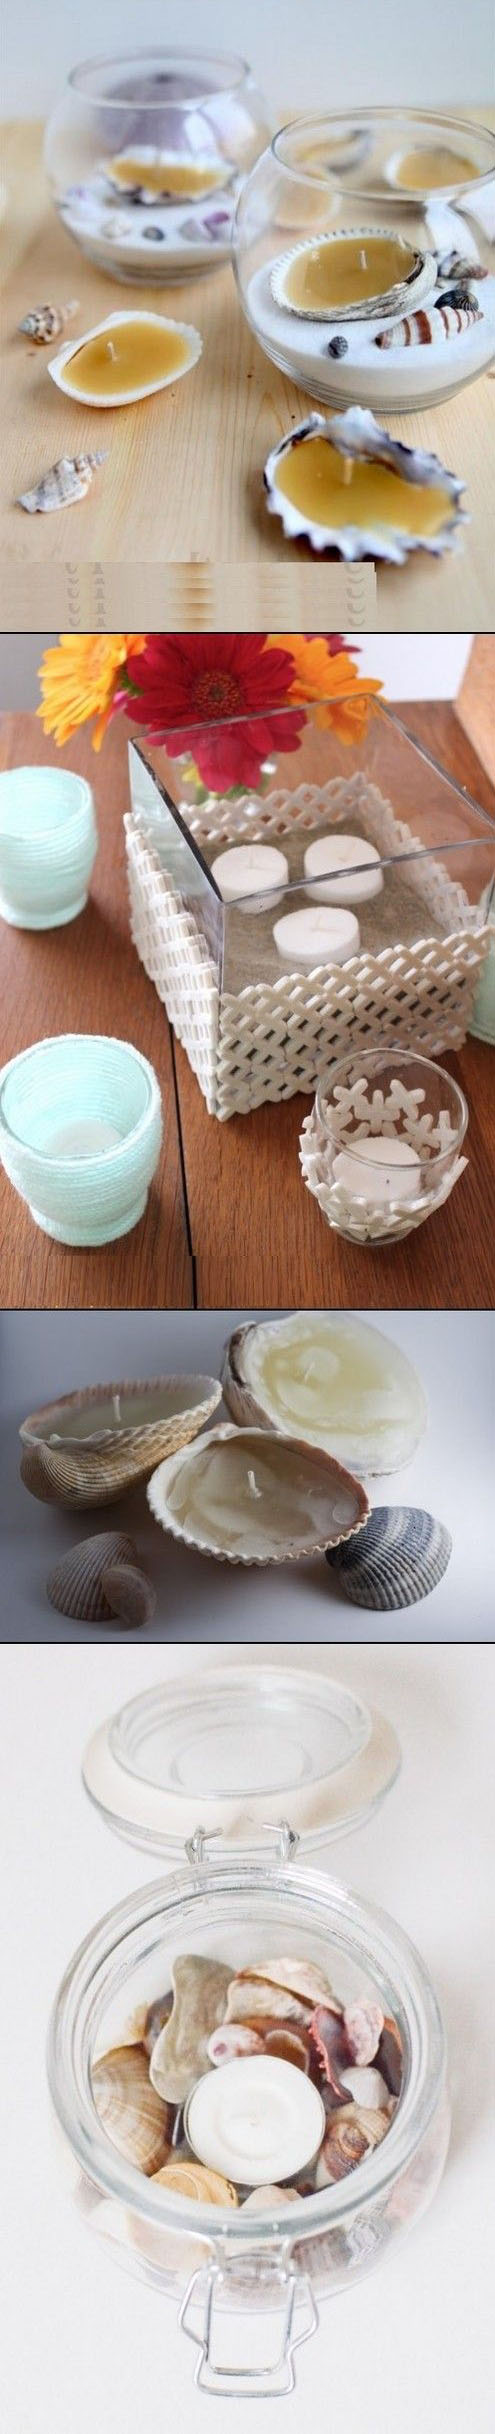 DIY candle holder in beach style11